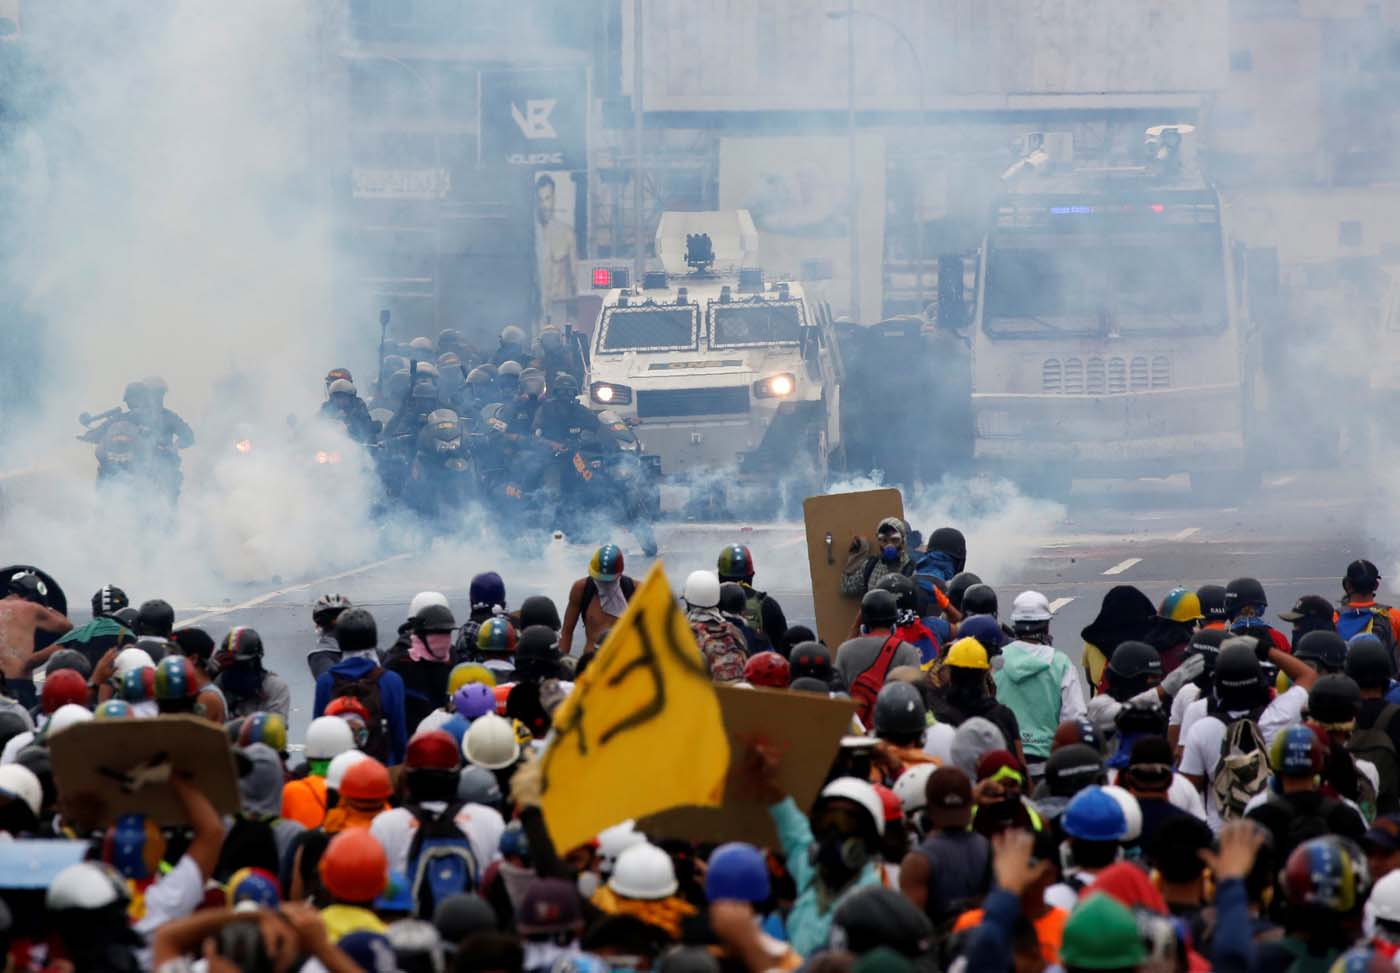 Opposition supporters clash with riot police while rallying against Venezuelan President Nicolas Maduro in Caracas, Venezuela, May 8, 2017. REUTERS/Carlos Garcia Rawlins